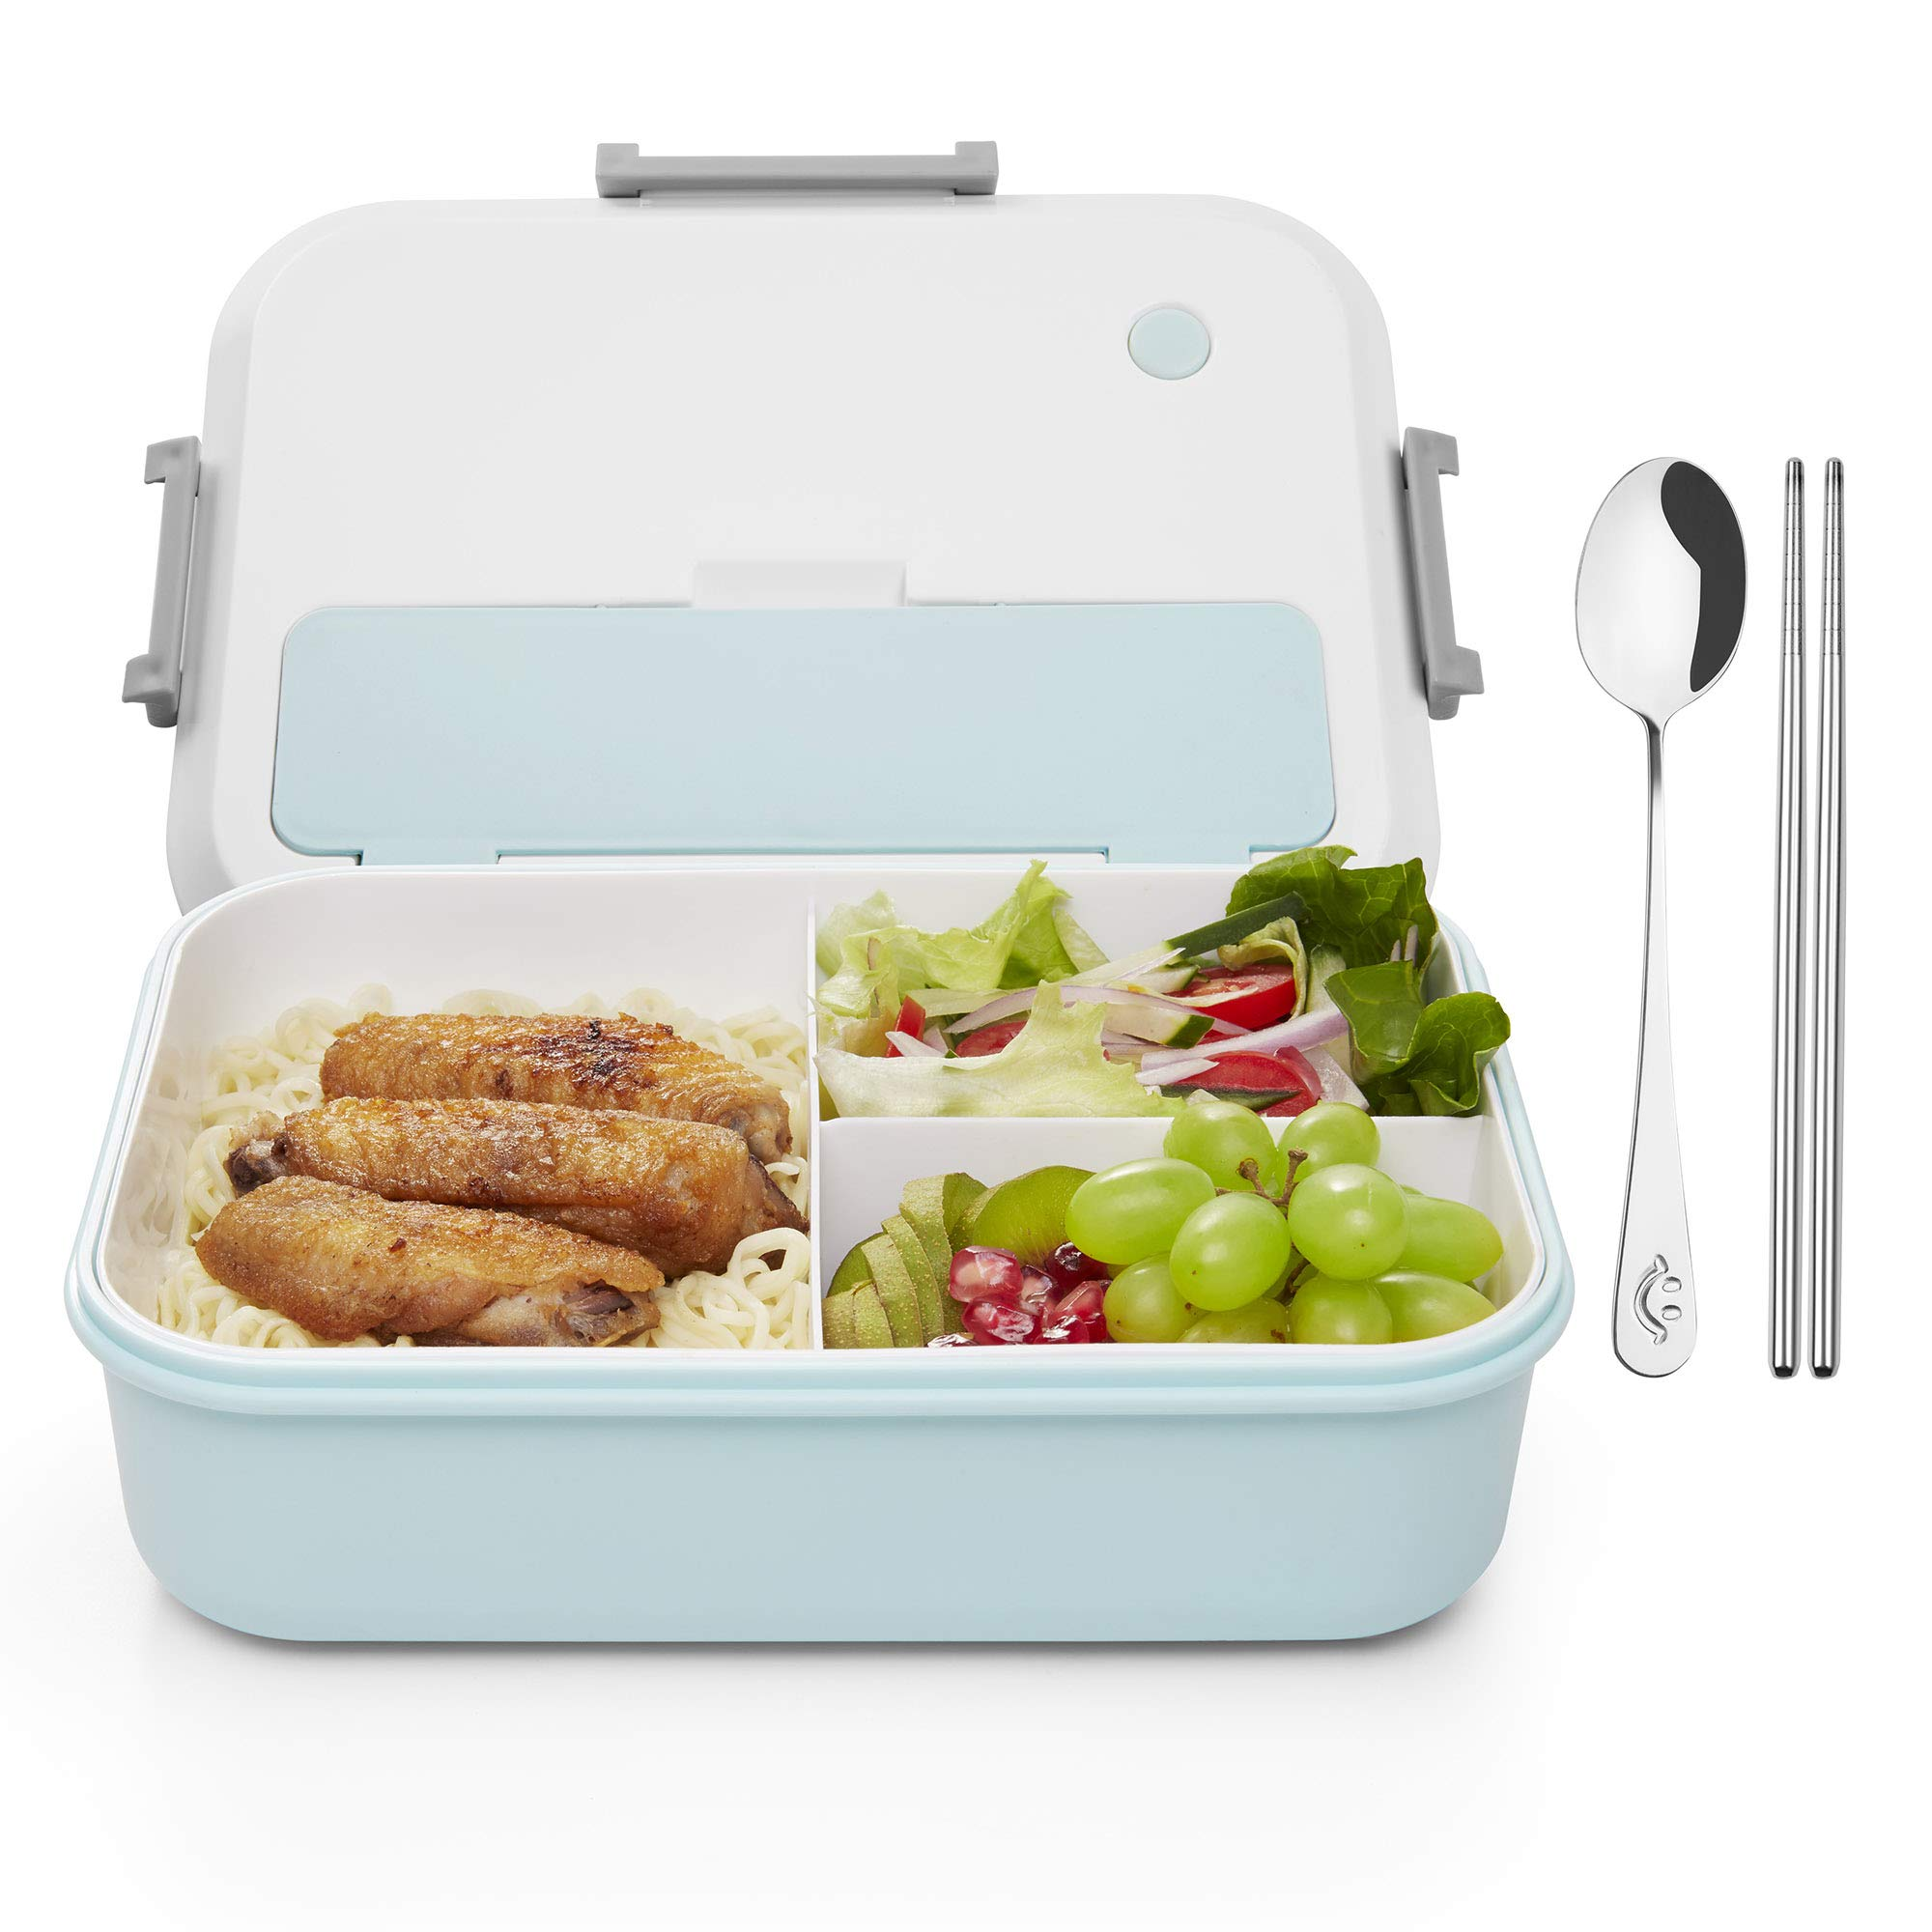 Bento Box for Kids & Adults   Reusable 3 Compartment Lunch Containers   Food Storage Container Boxes with Utensil   ECO-Safe & Healthy (Blue)